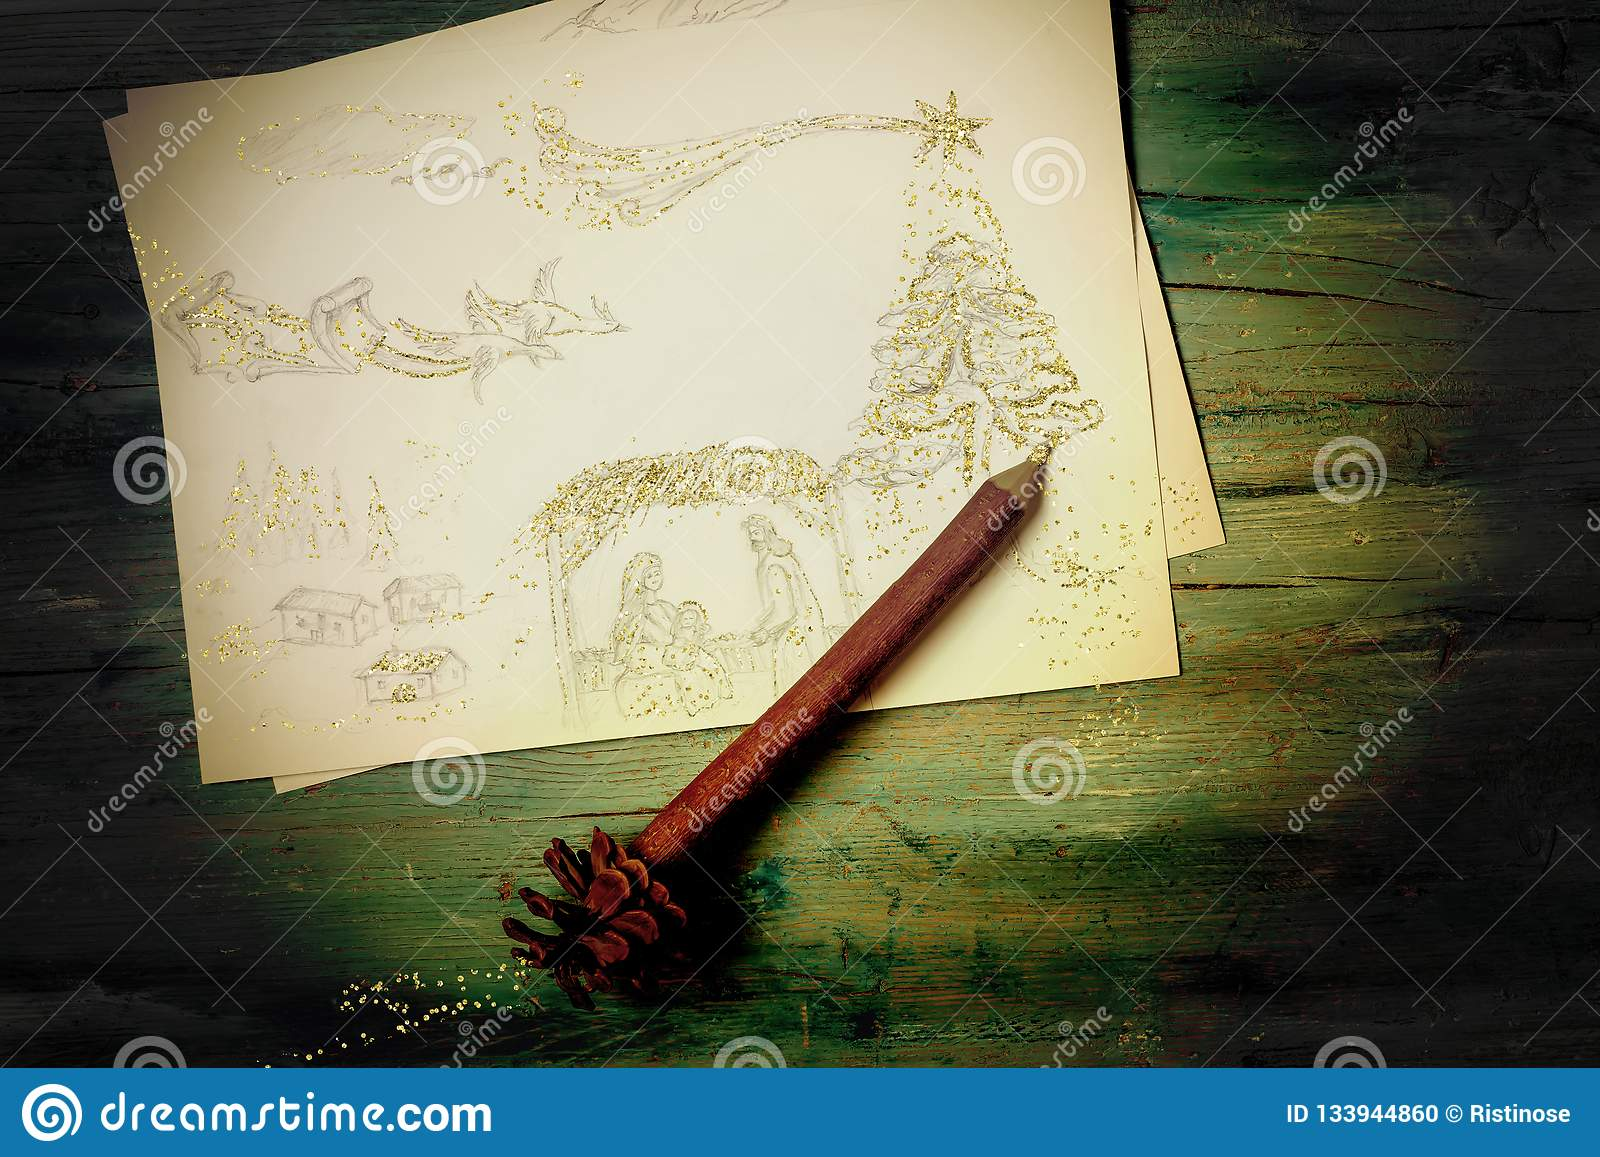 Christmas postcard nativity scene freehand drawing picture with an elf pencil and golden glitter on old wooden table